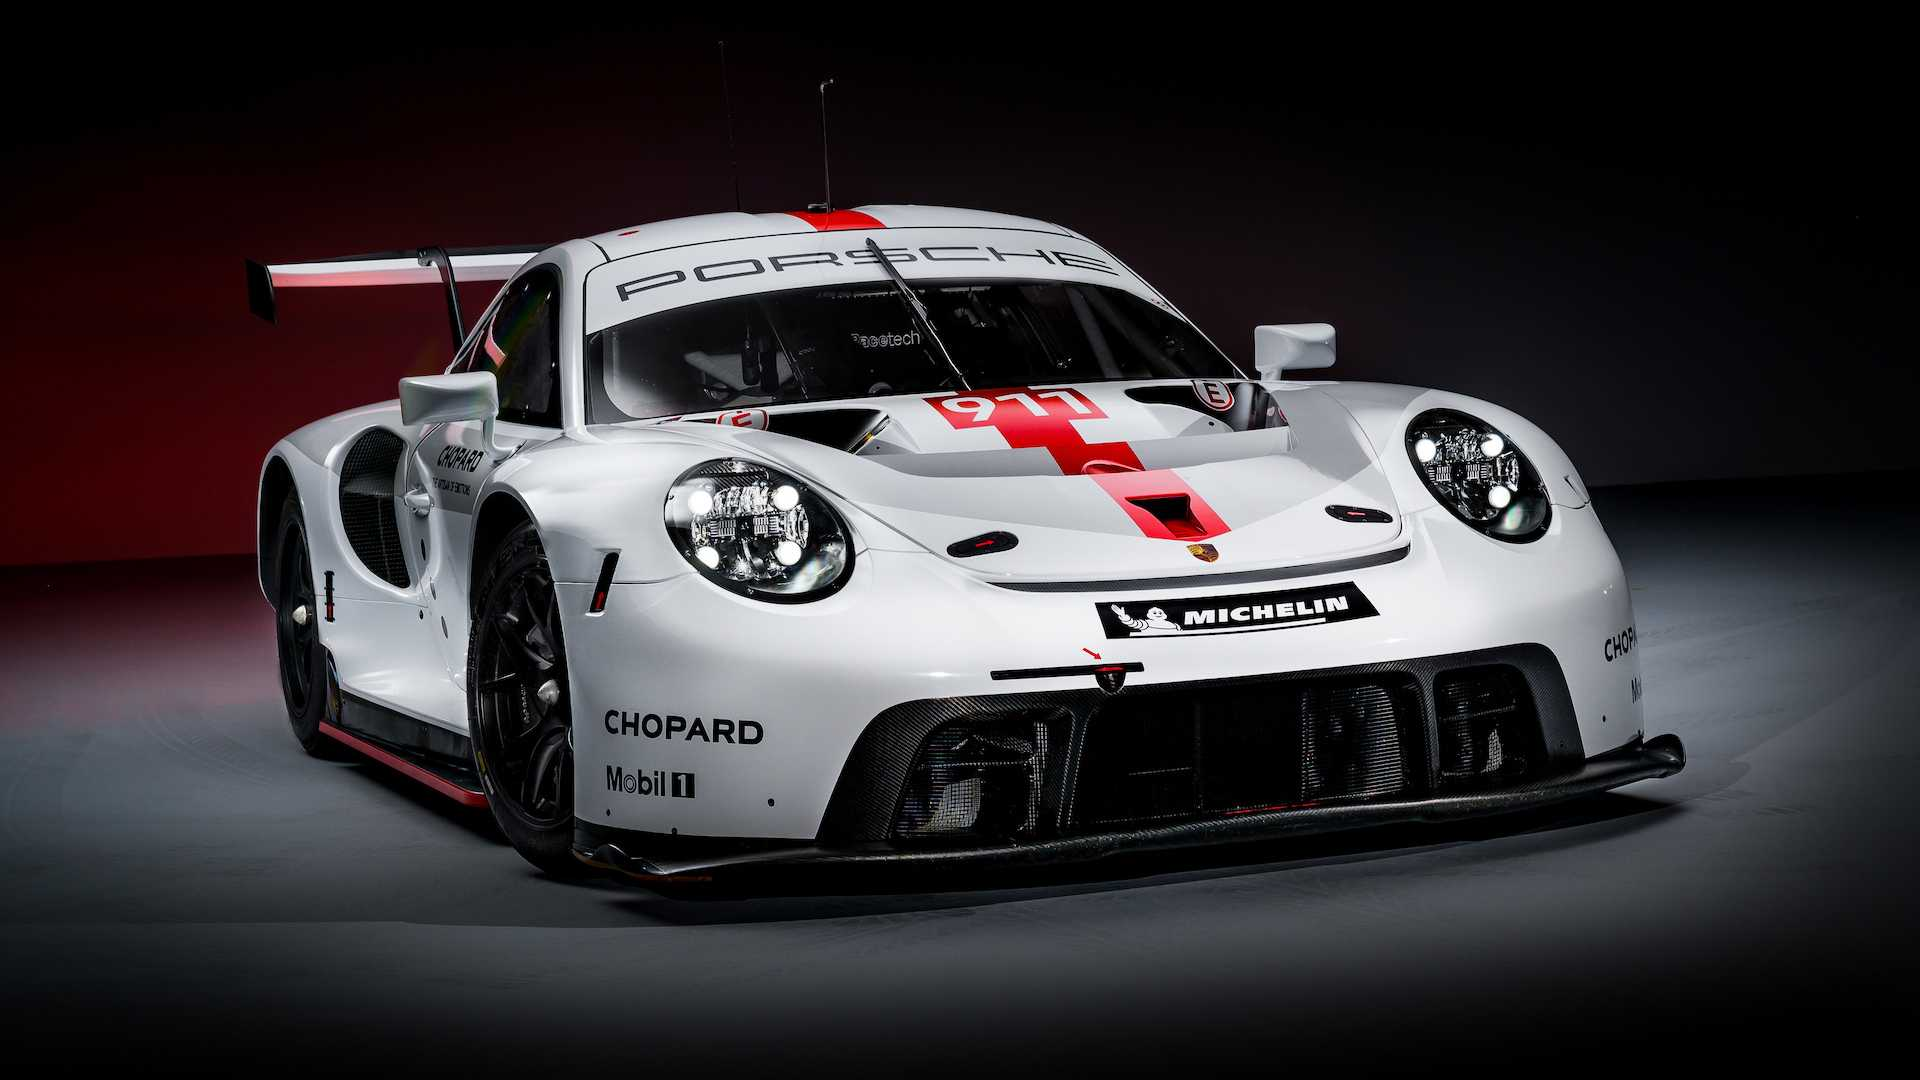 New Porsche 911 RSR revealed at Goodwood